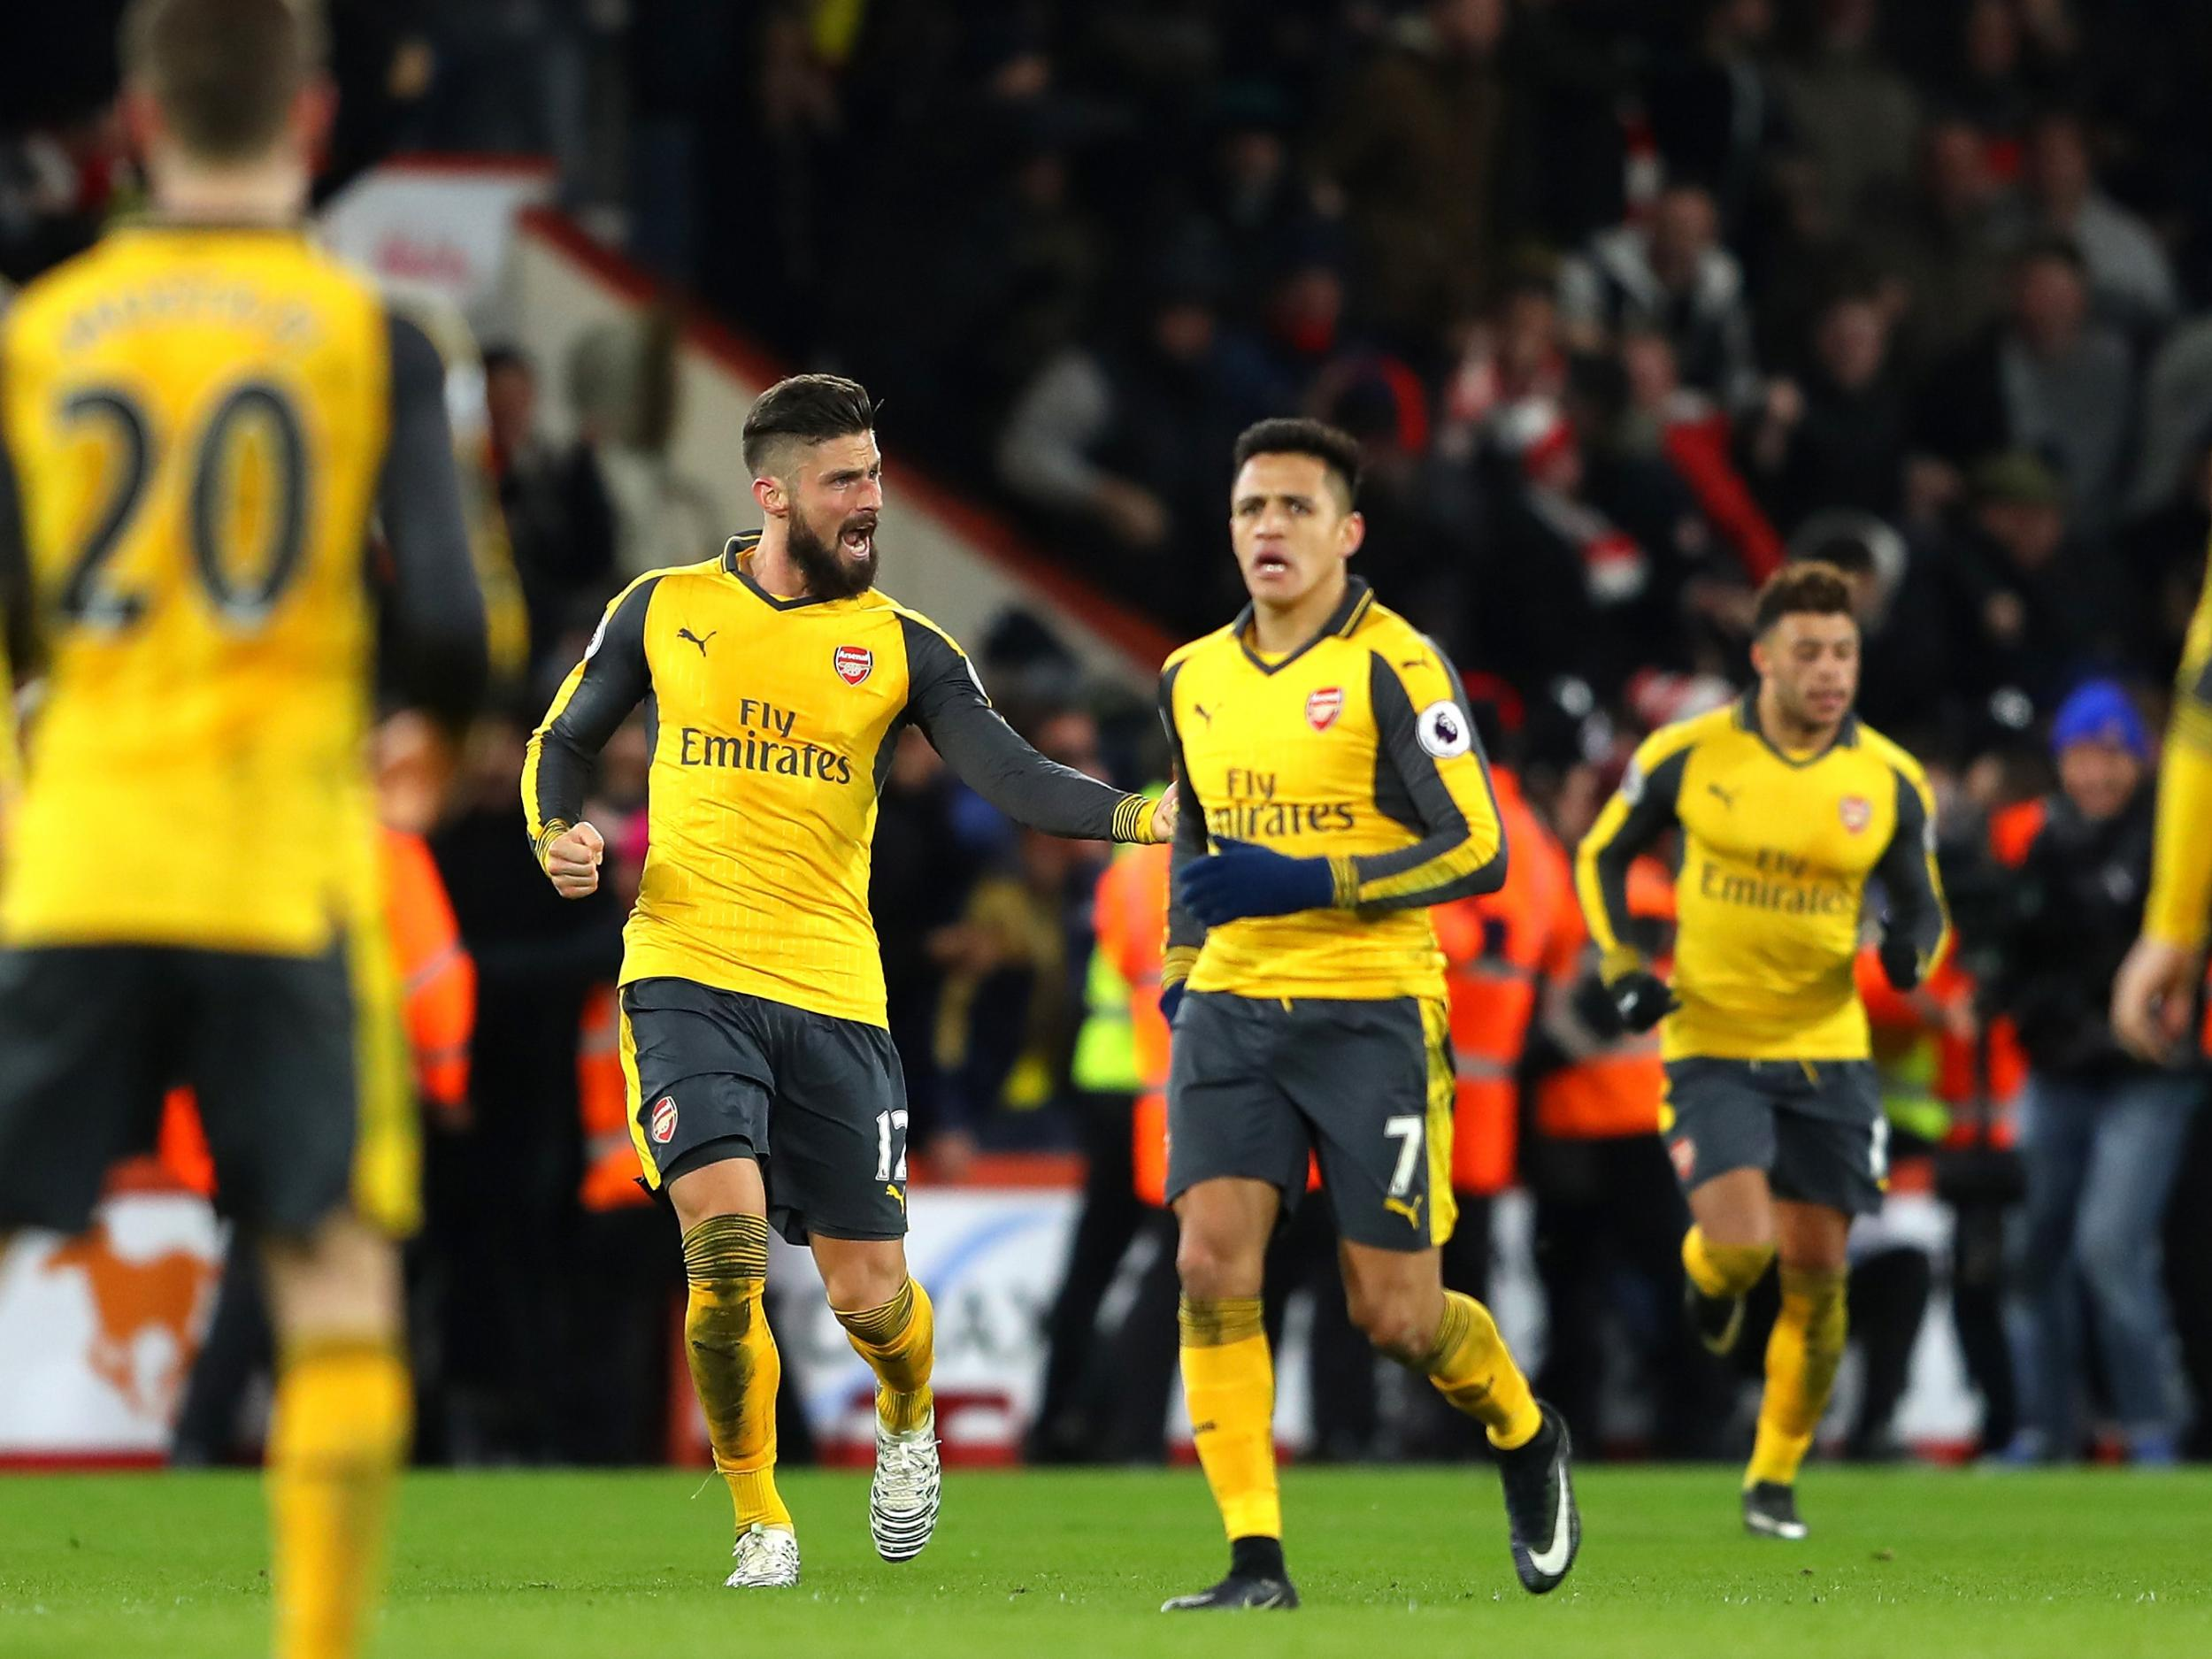 Arsenal transfer news: Alexis Sanchez sparks exit fears by refusing to speak to teammates after draw